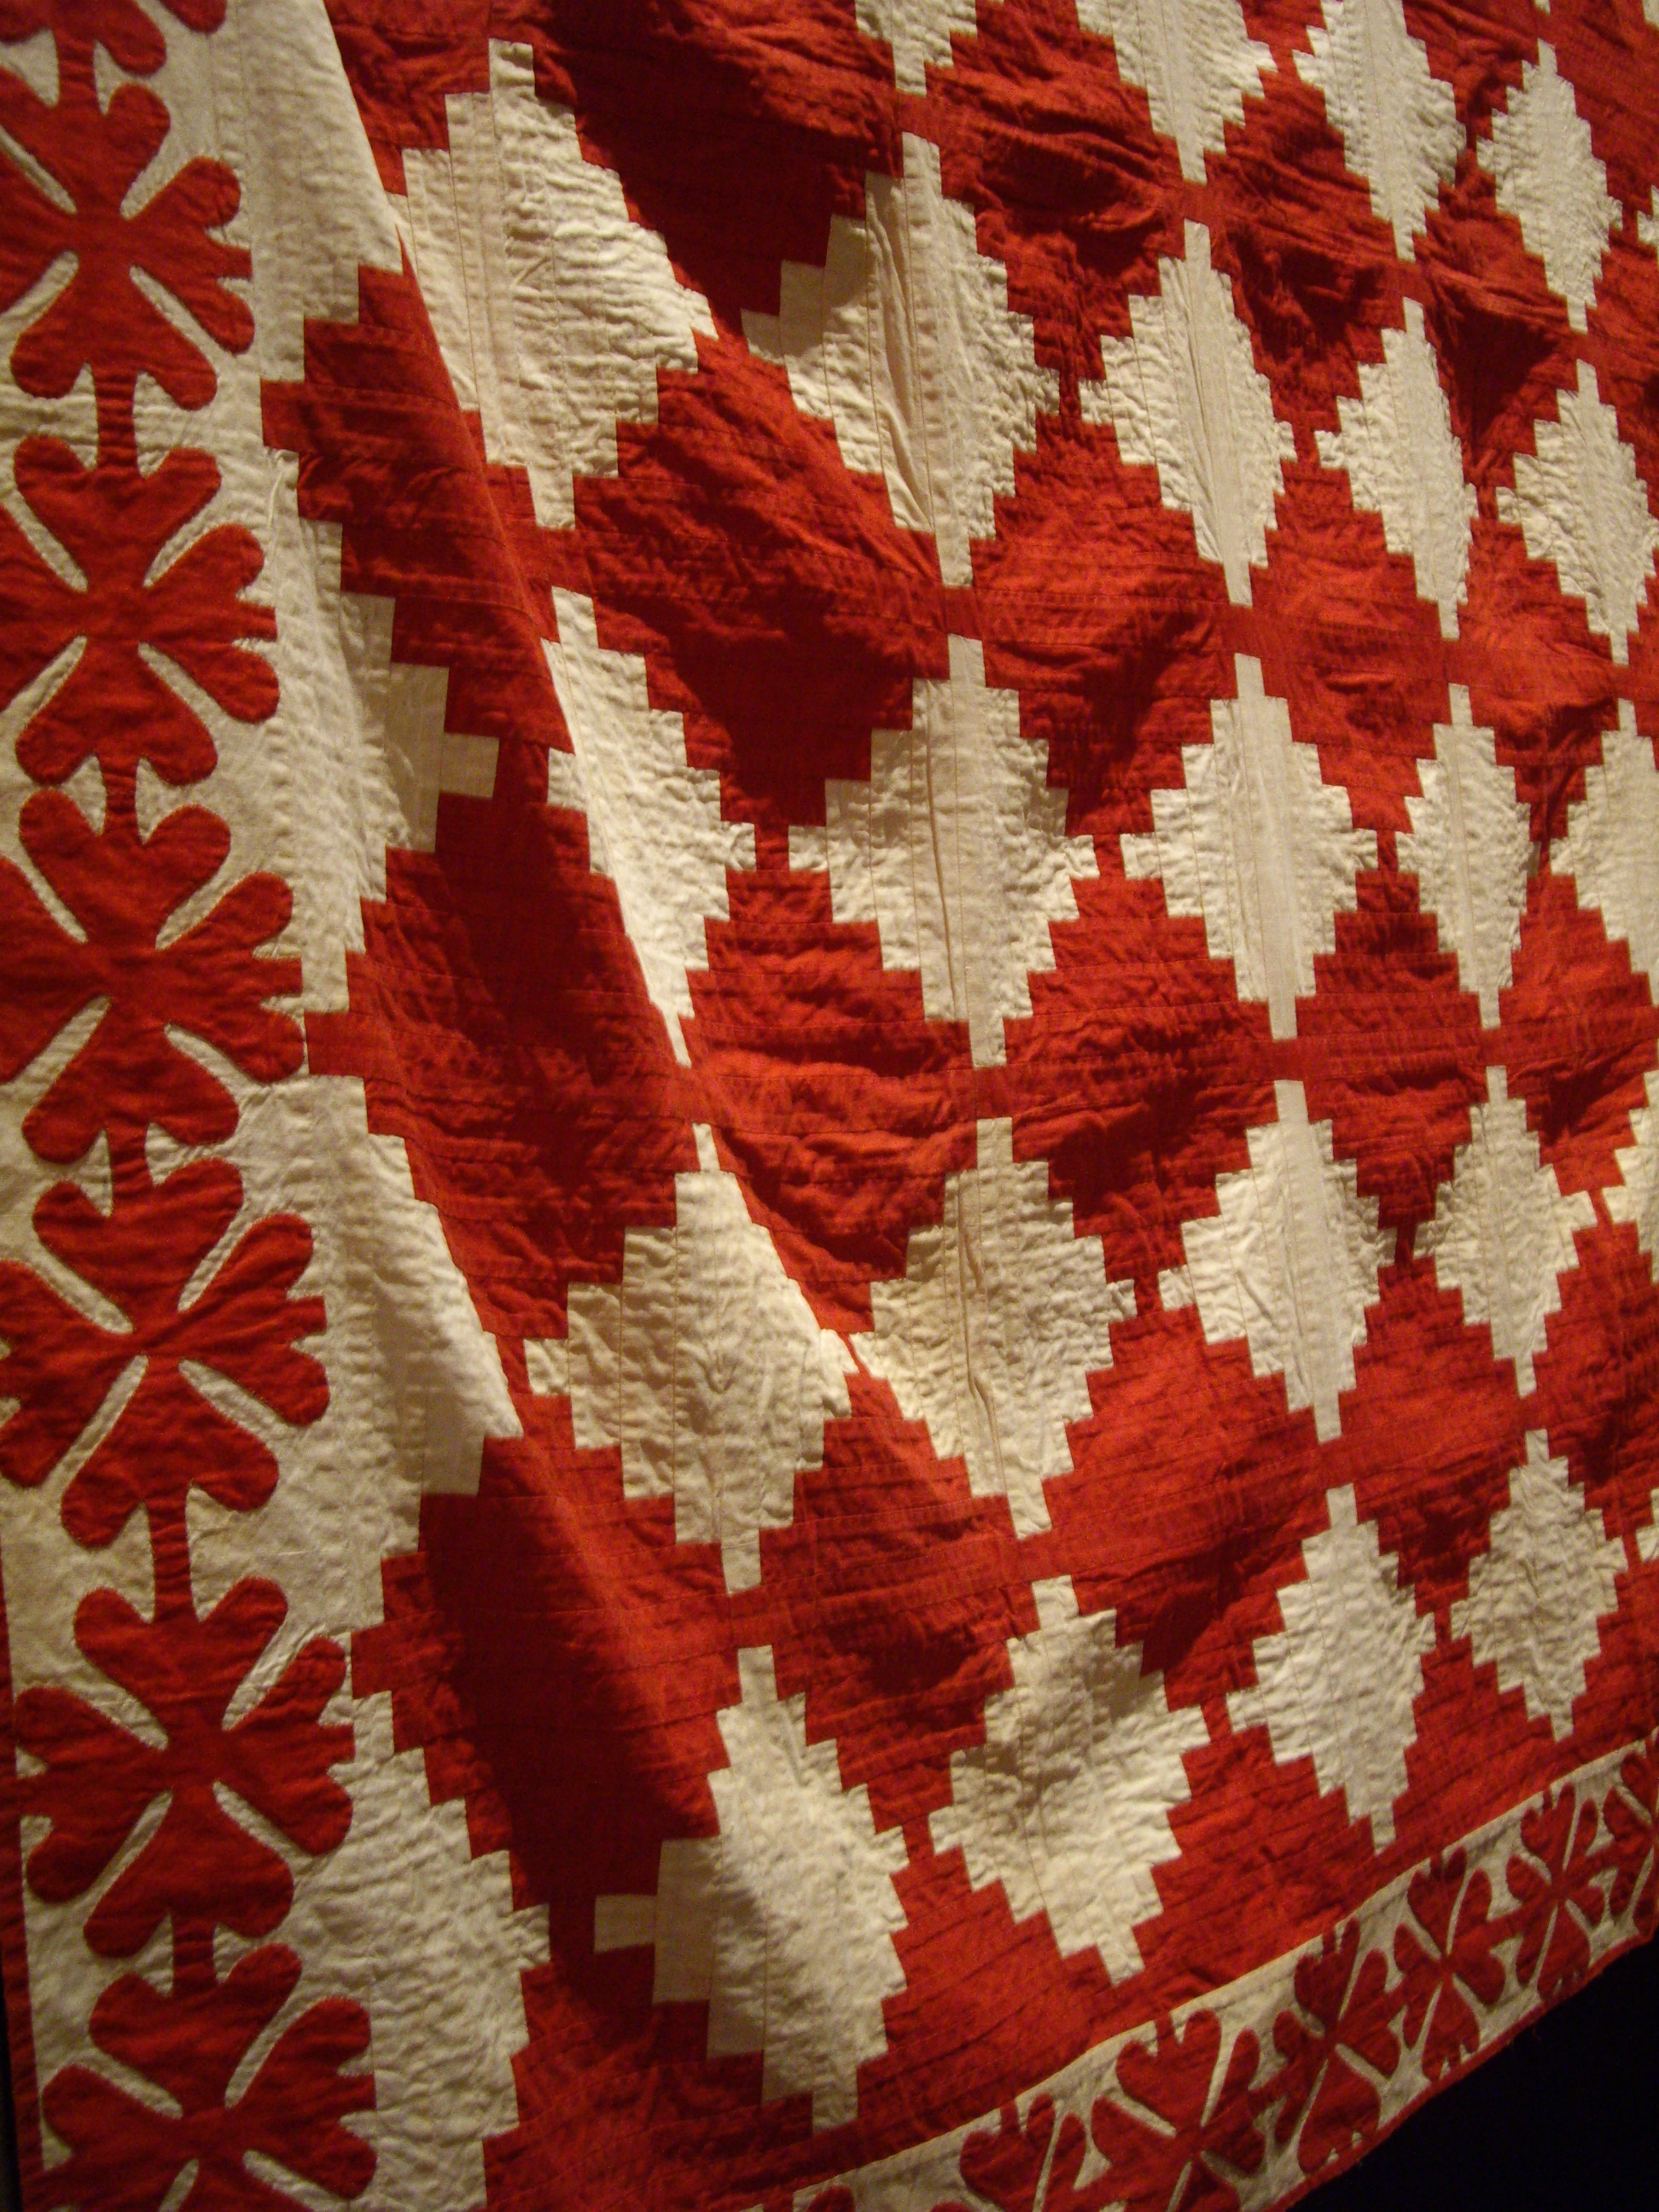 Rosebud's Cottage: My favorite red quilt pix : red quilts - Adamdwight.com